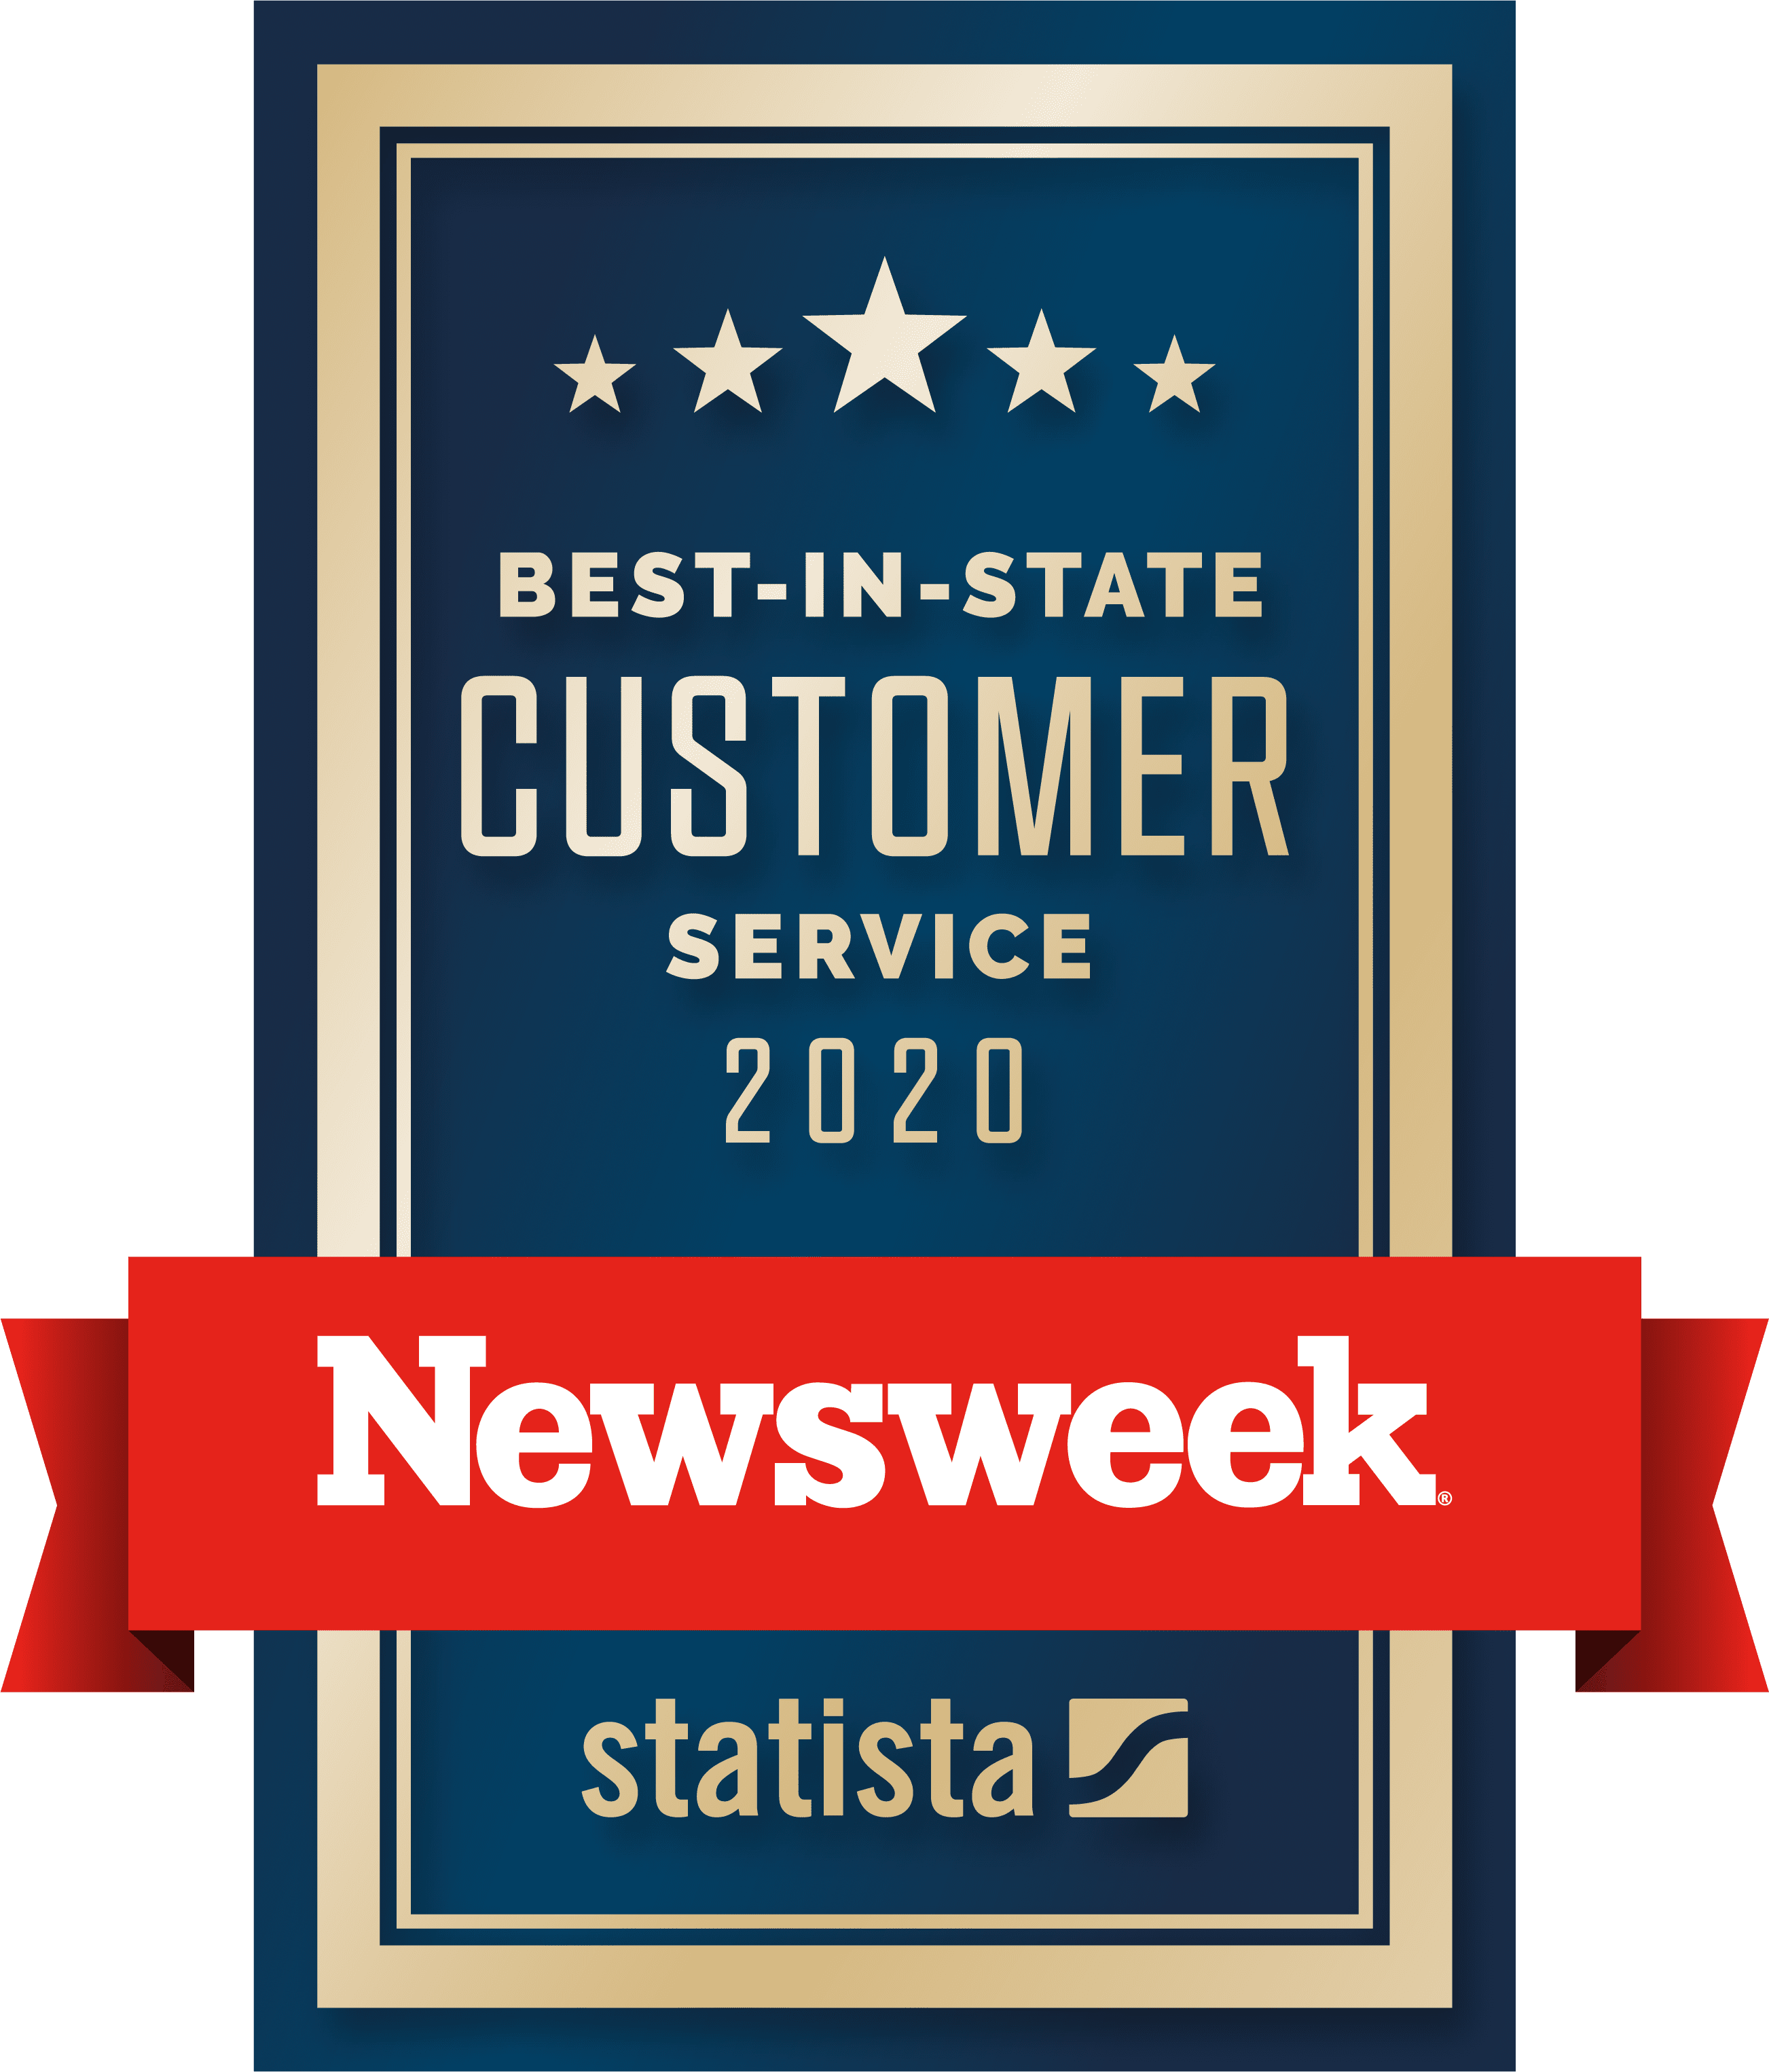 Newsweek Best-In-State 2020